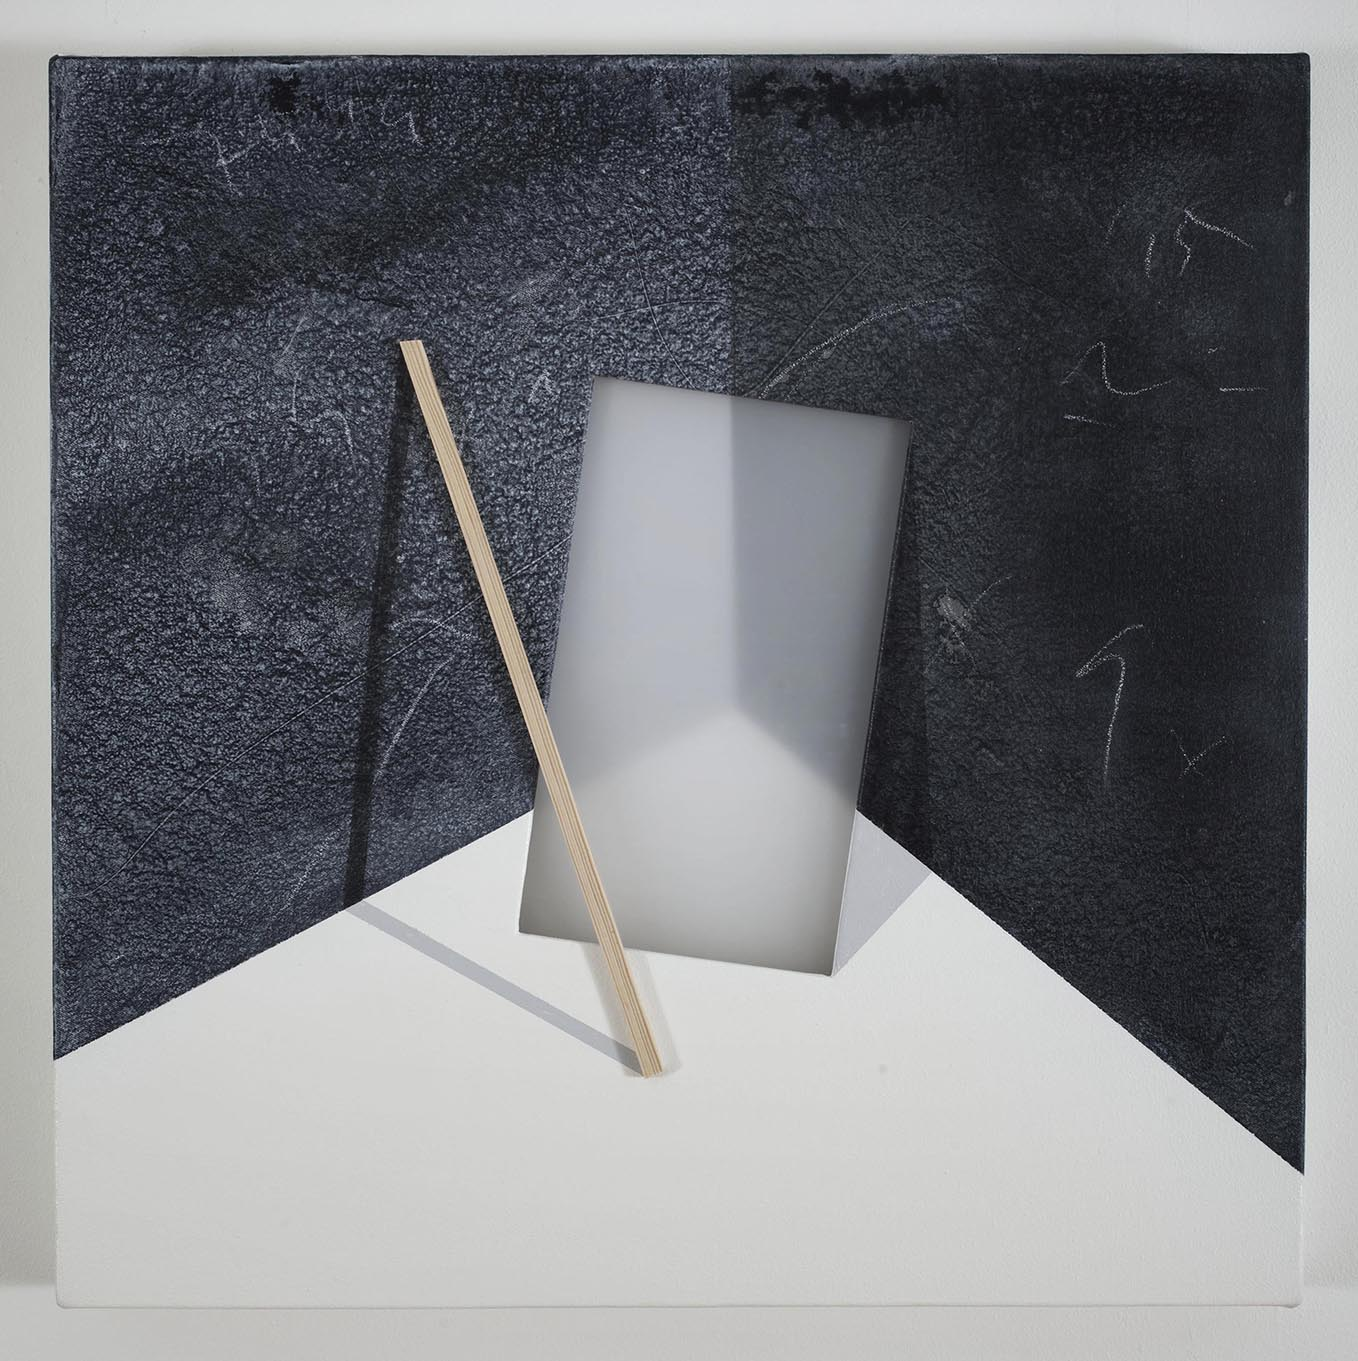 Wooden slat and Plexiglas sheet in a corner of a room / 2016 / Acrylic paint,  wooden strip and plexiglass  on canvas / 50x50 cm   - STAGE  - Pere Galera